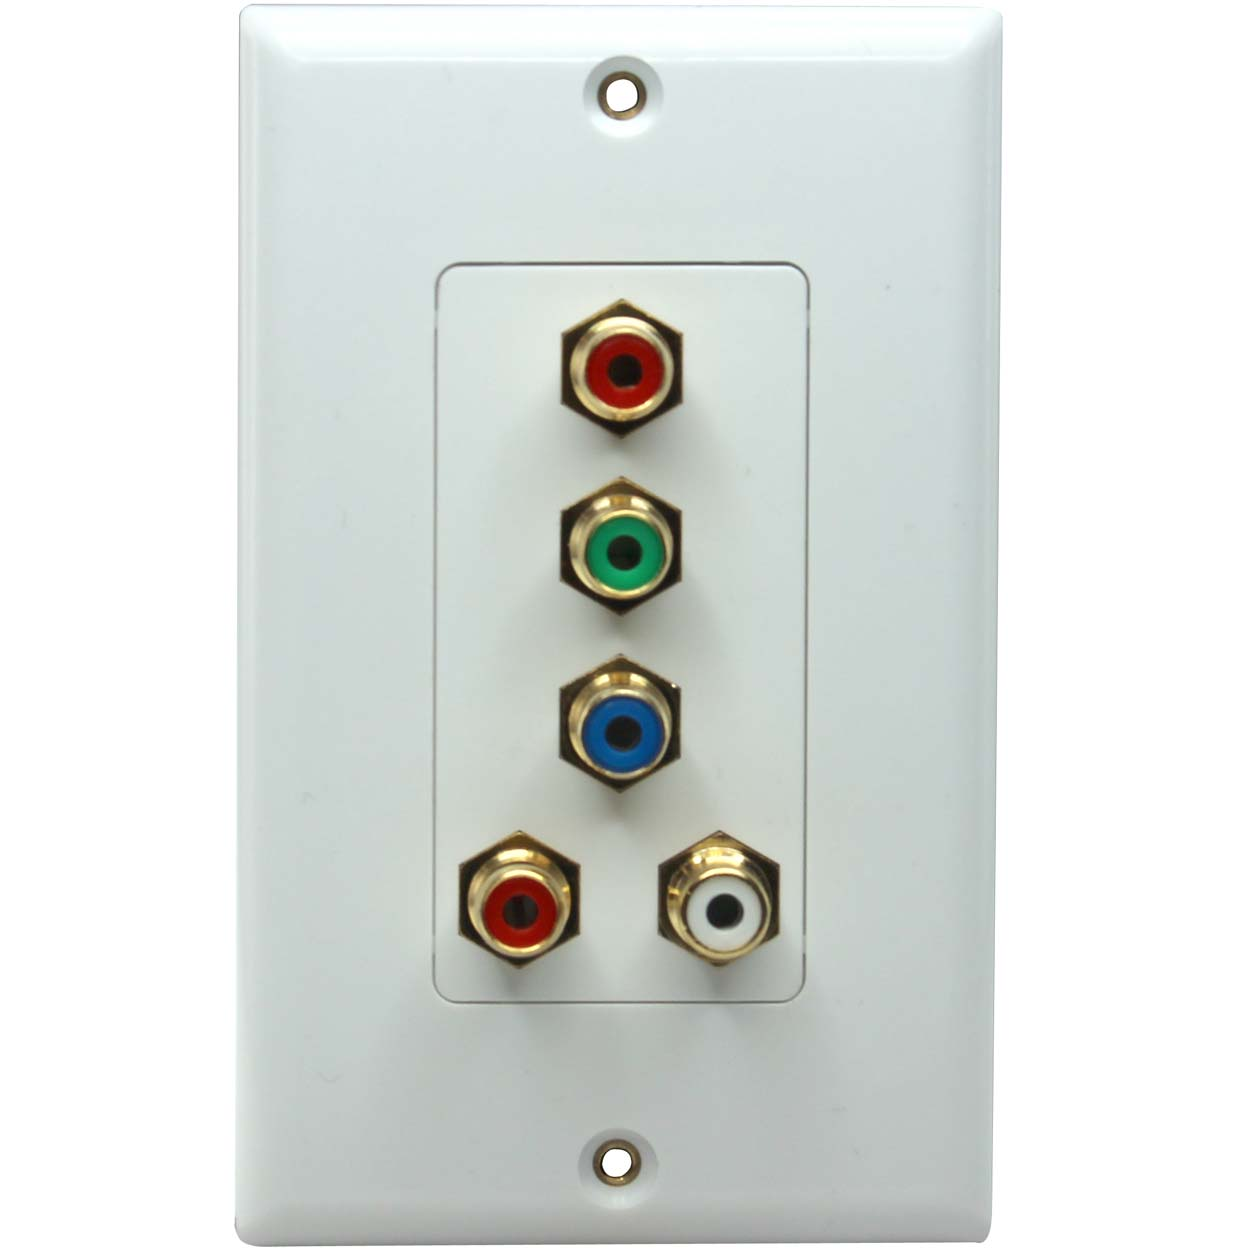 5 Port Decora Rca Connector Wall Plate Female To Female